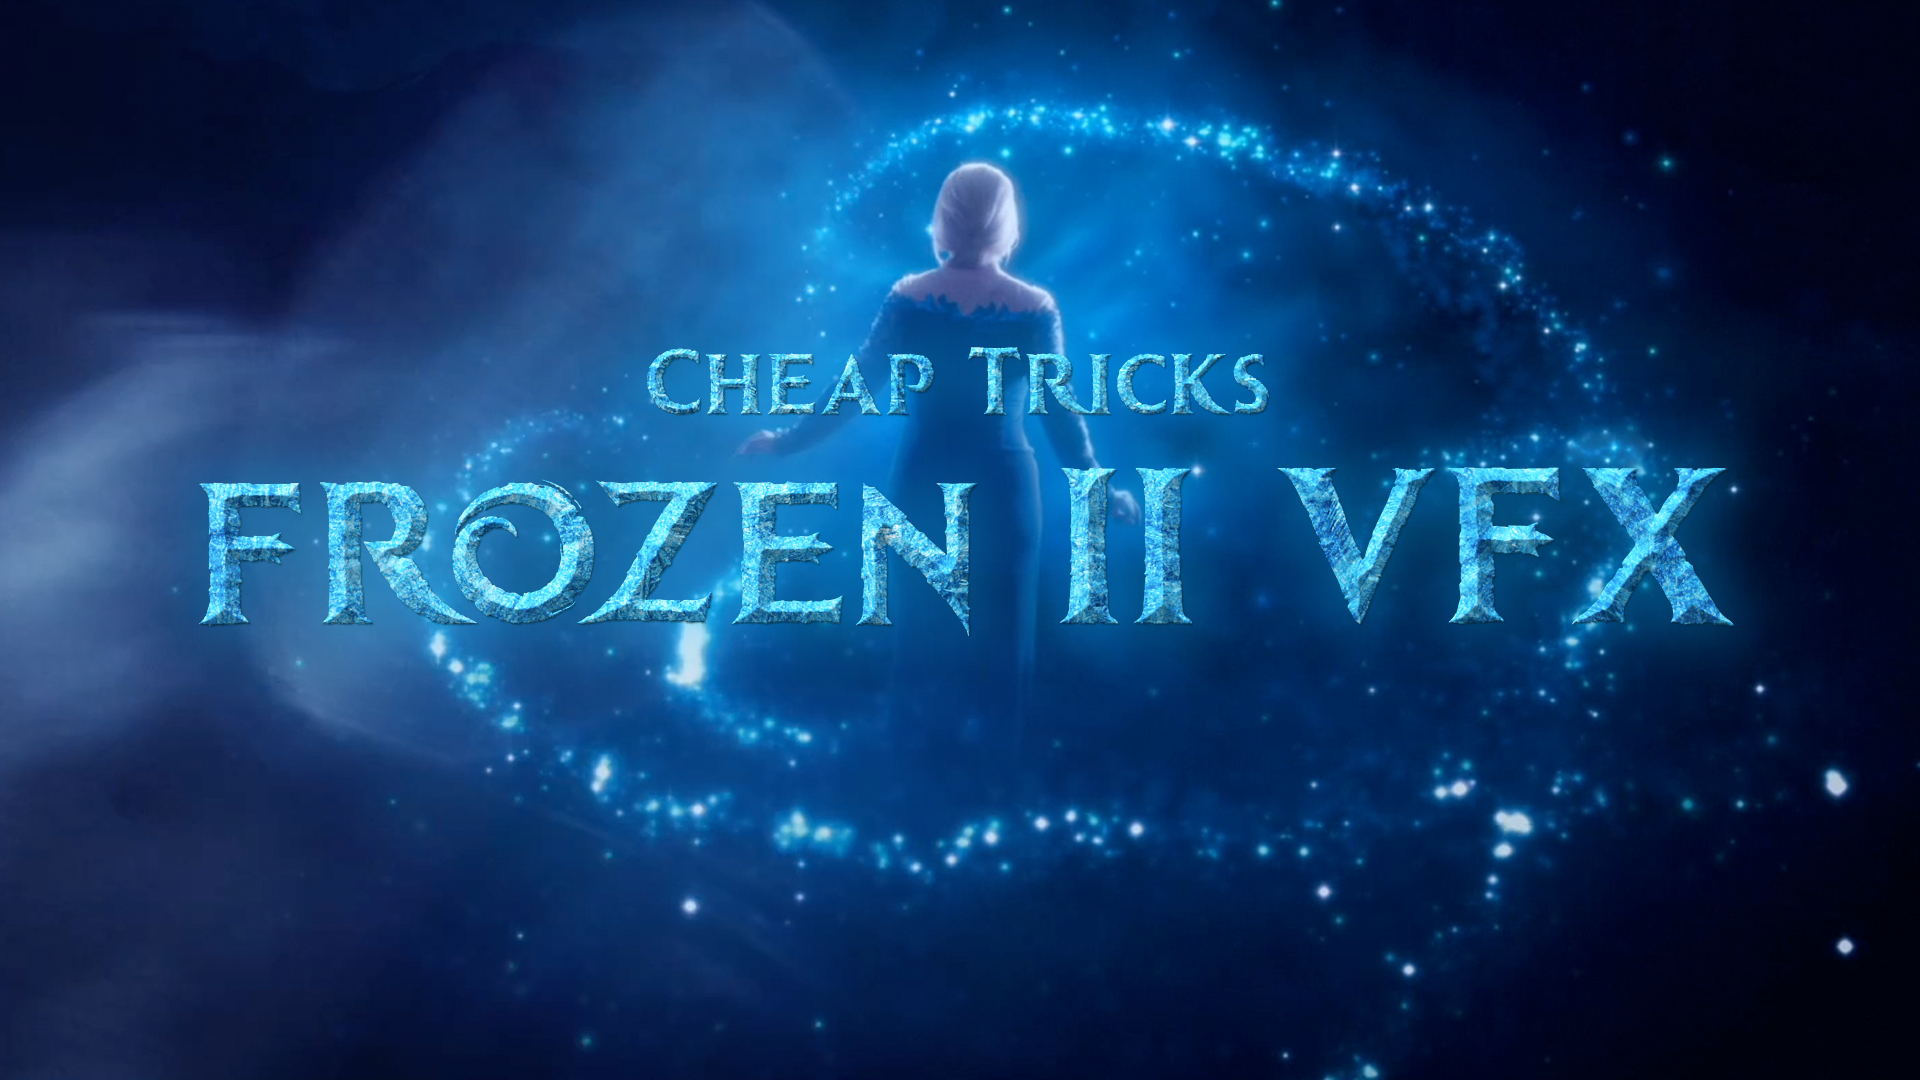 Cheap Tricks #12 | Frozen II VFX